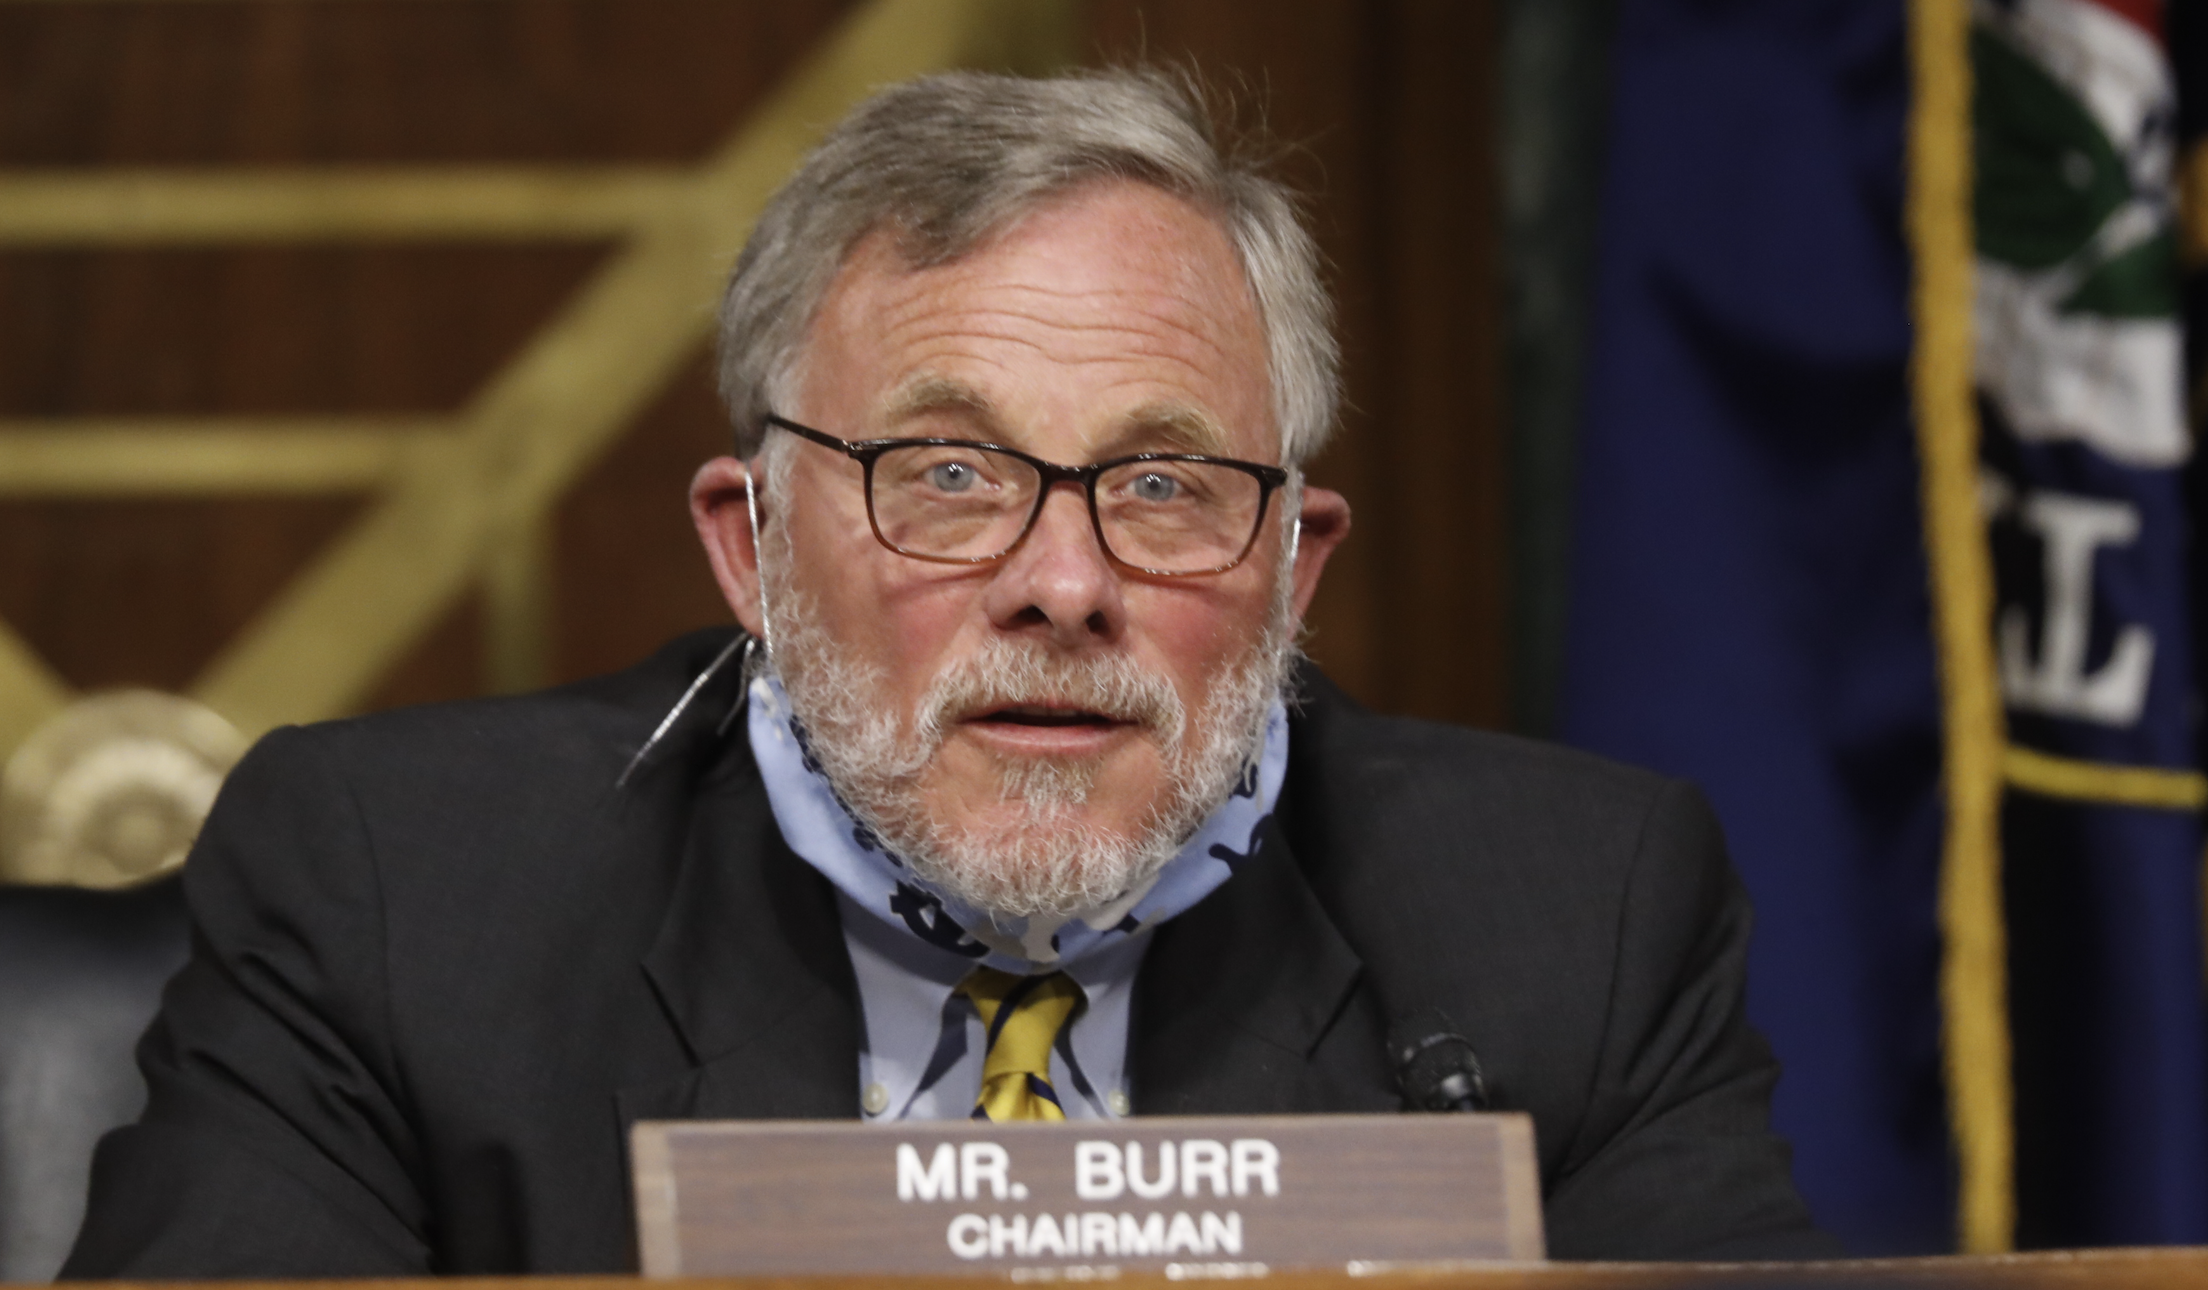 Congress insider trading inquiry looks 'particularly damning' for Senator Burr, expert says